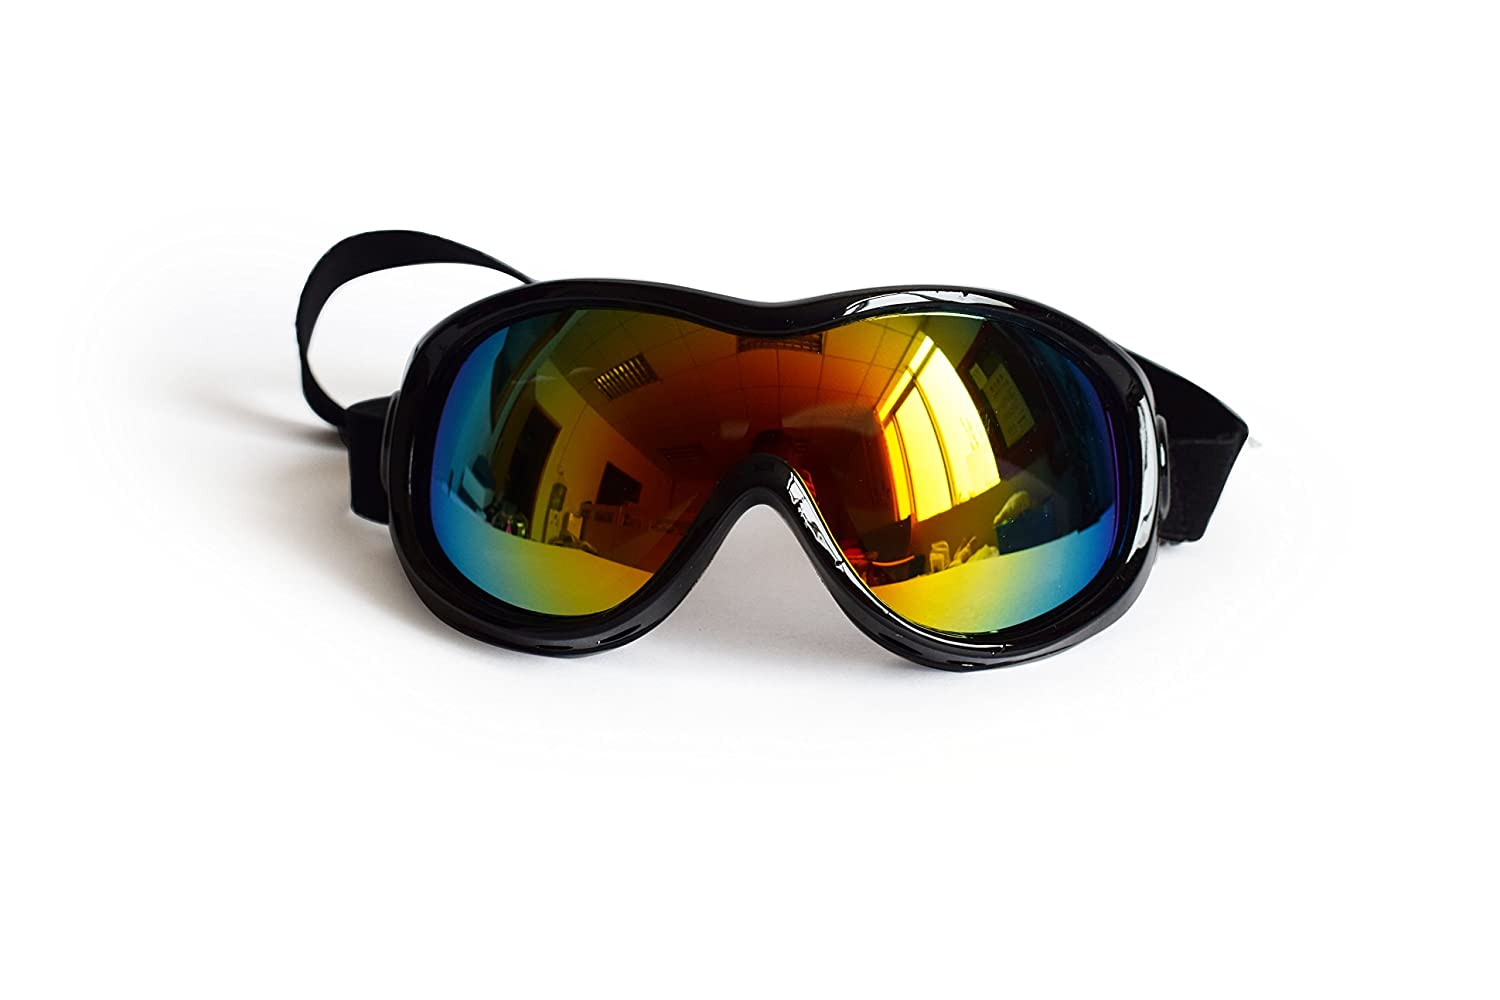 Black Sun Glassess Glassess Goggles UV Predection Safety Goggles Snow Skiing Predection Goggles with Removable Starp for Dog Over Than 35Pounds(Black)